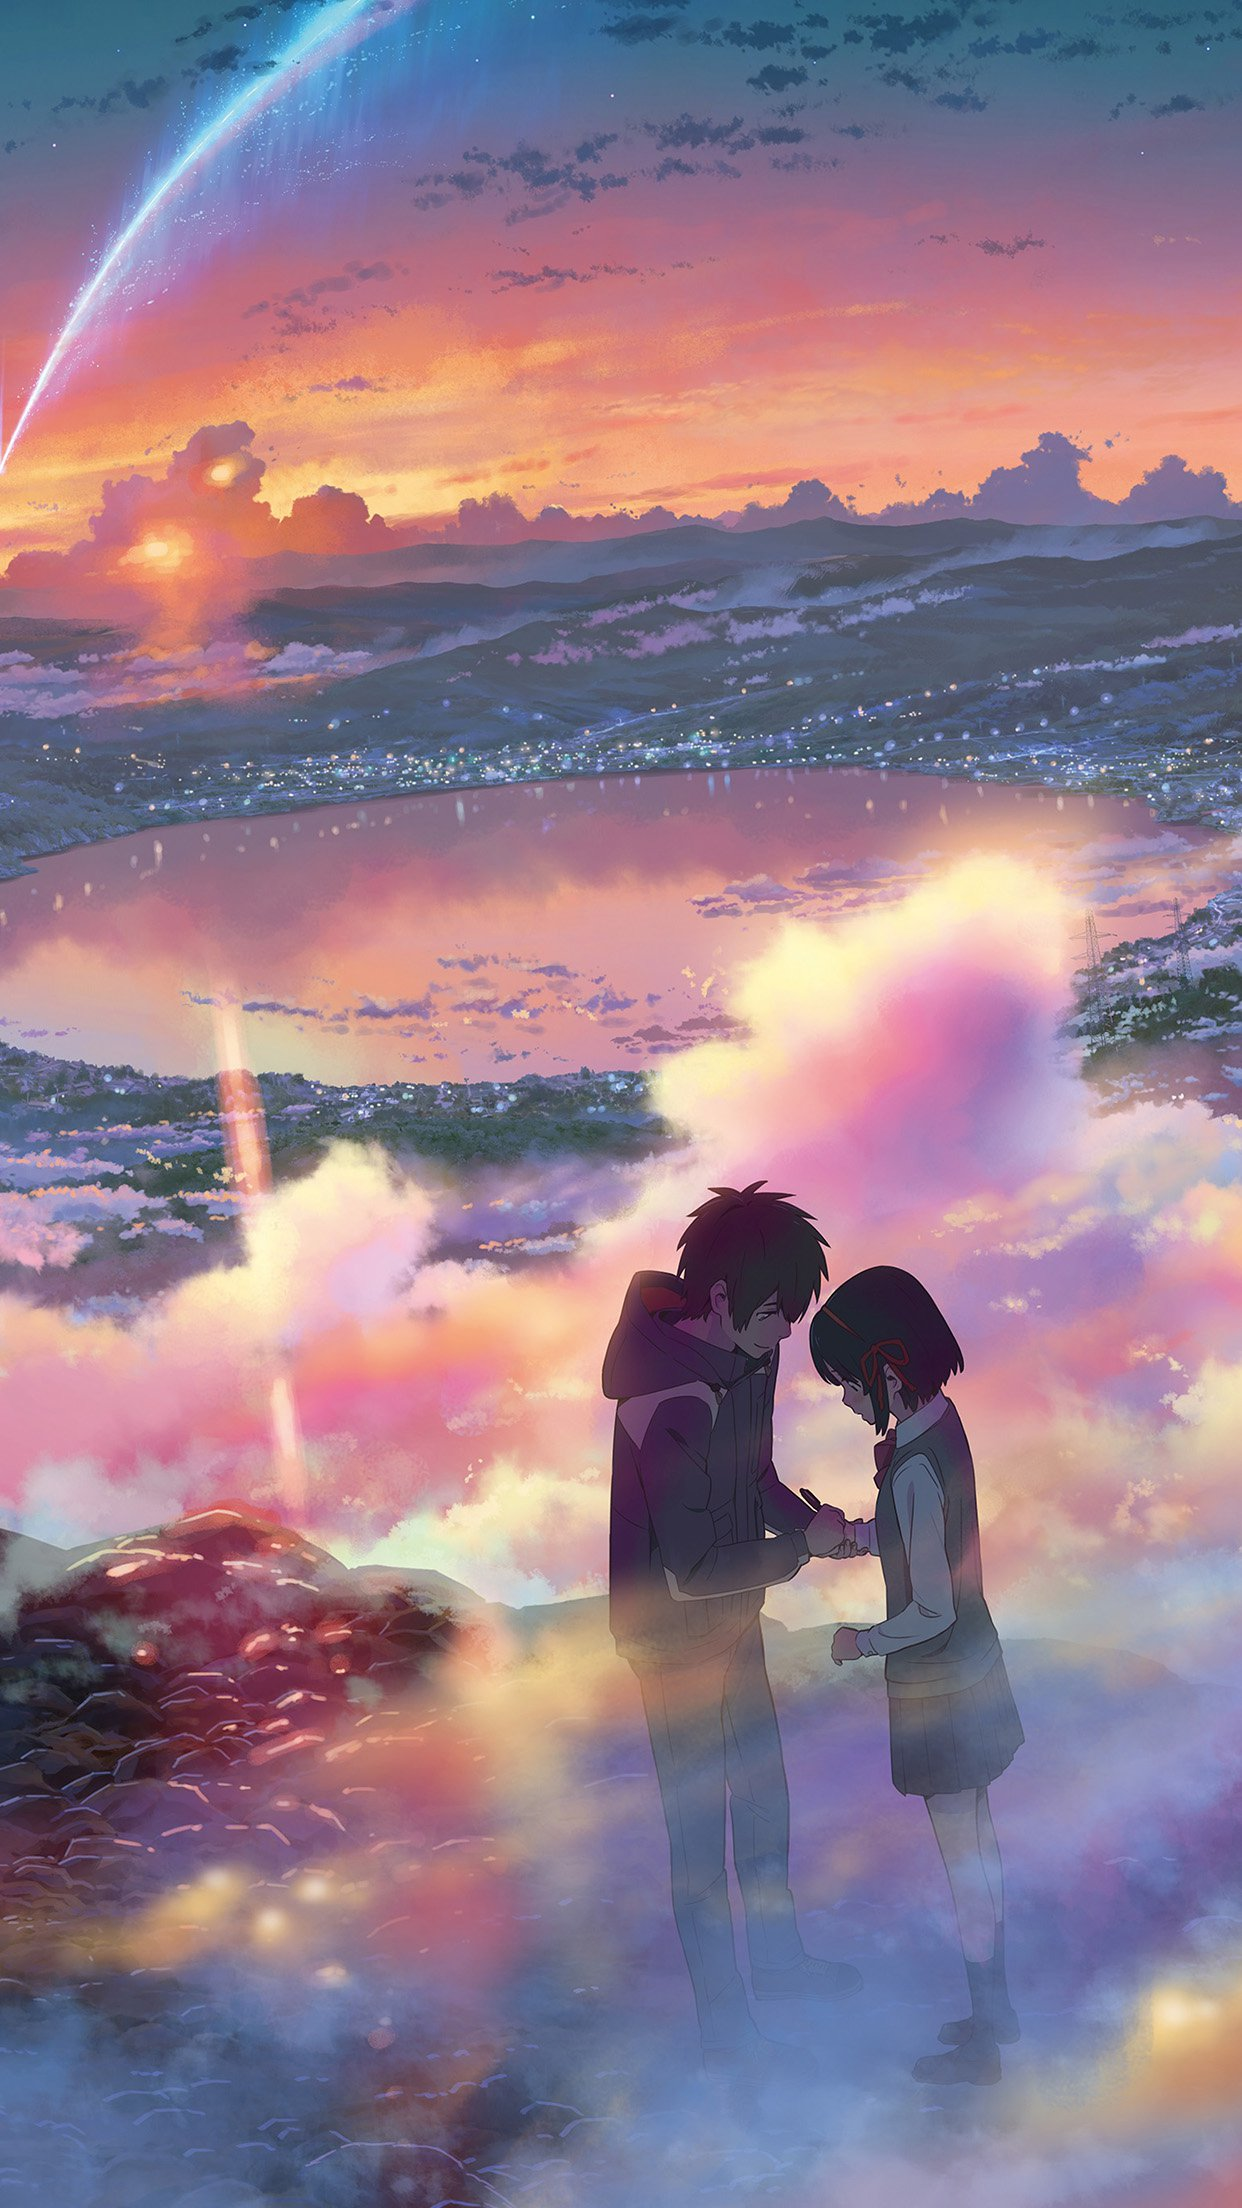 yourname anime filme illustration art android wallpaper android hd wallpapers